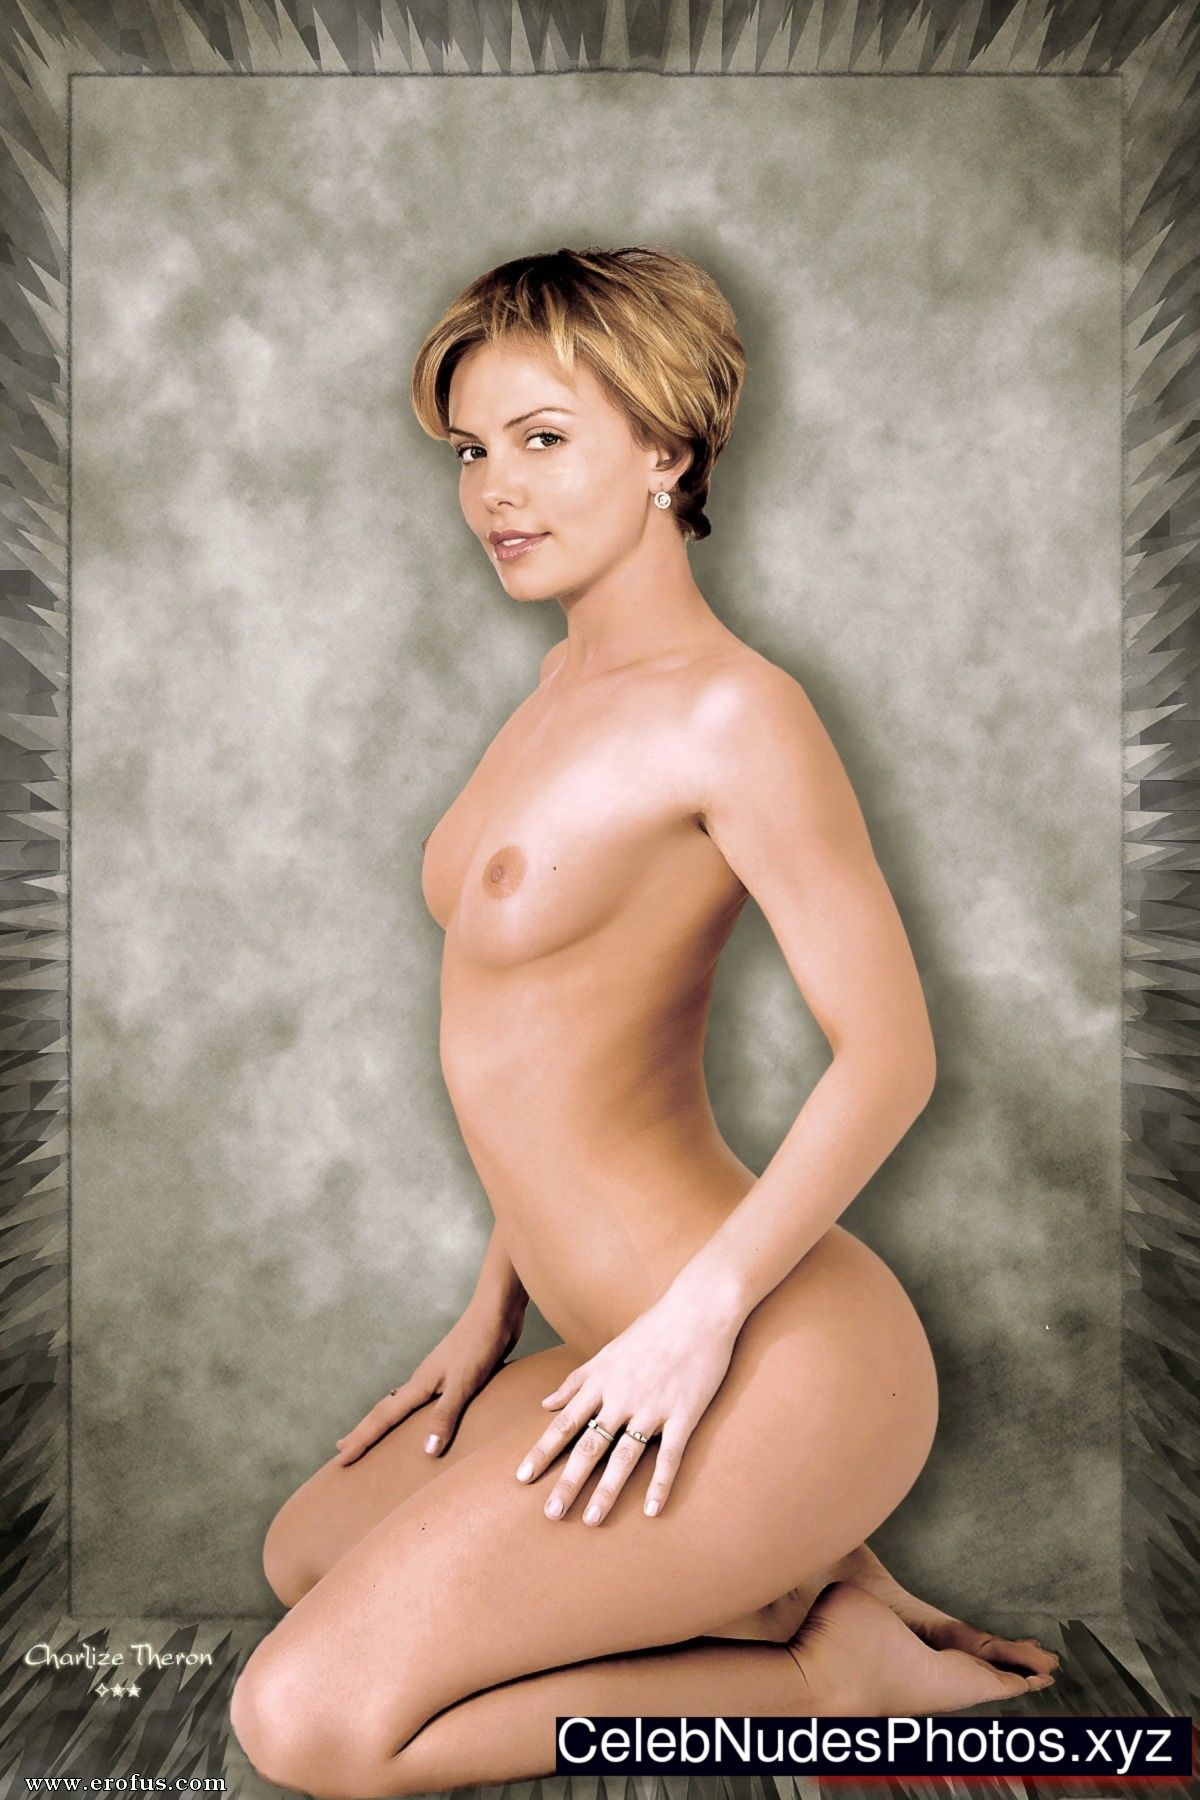 women-charlize-theron-sexy-naked-body-women